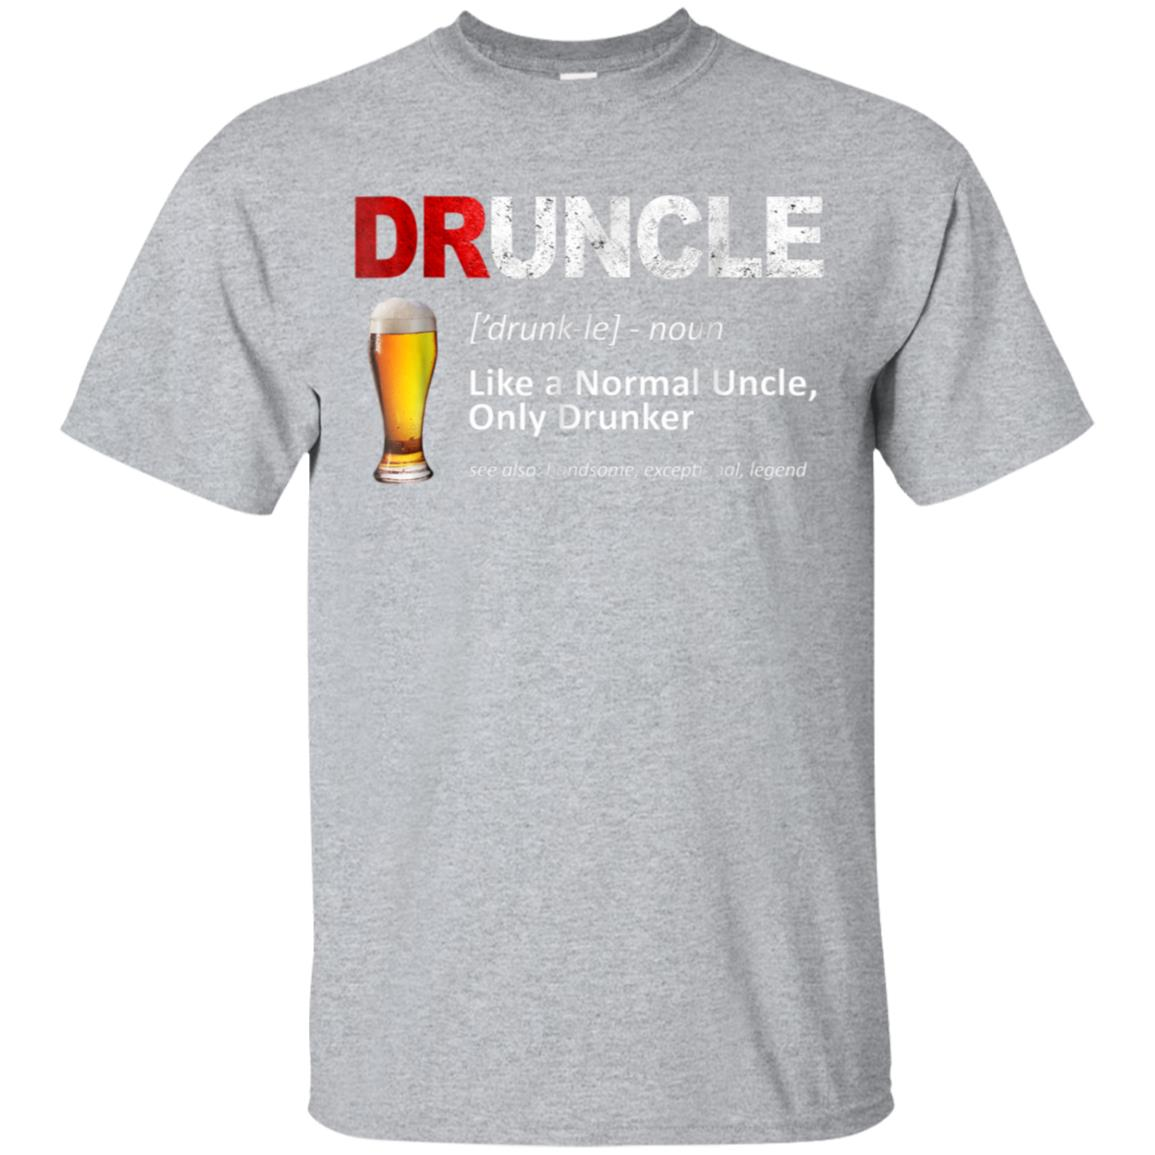 Mens Funny Druncle Like A Normal Uncle Only Drunker T-Shirt 99promocode